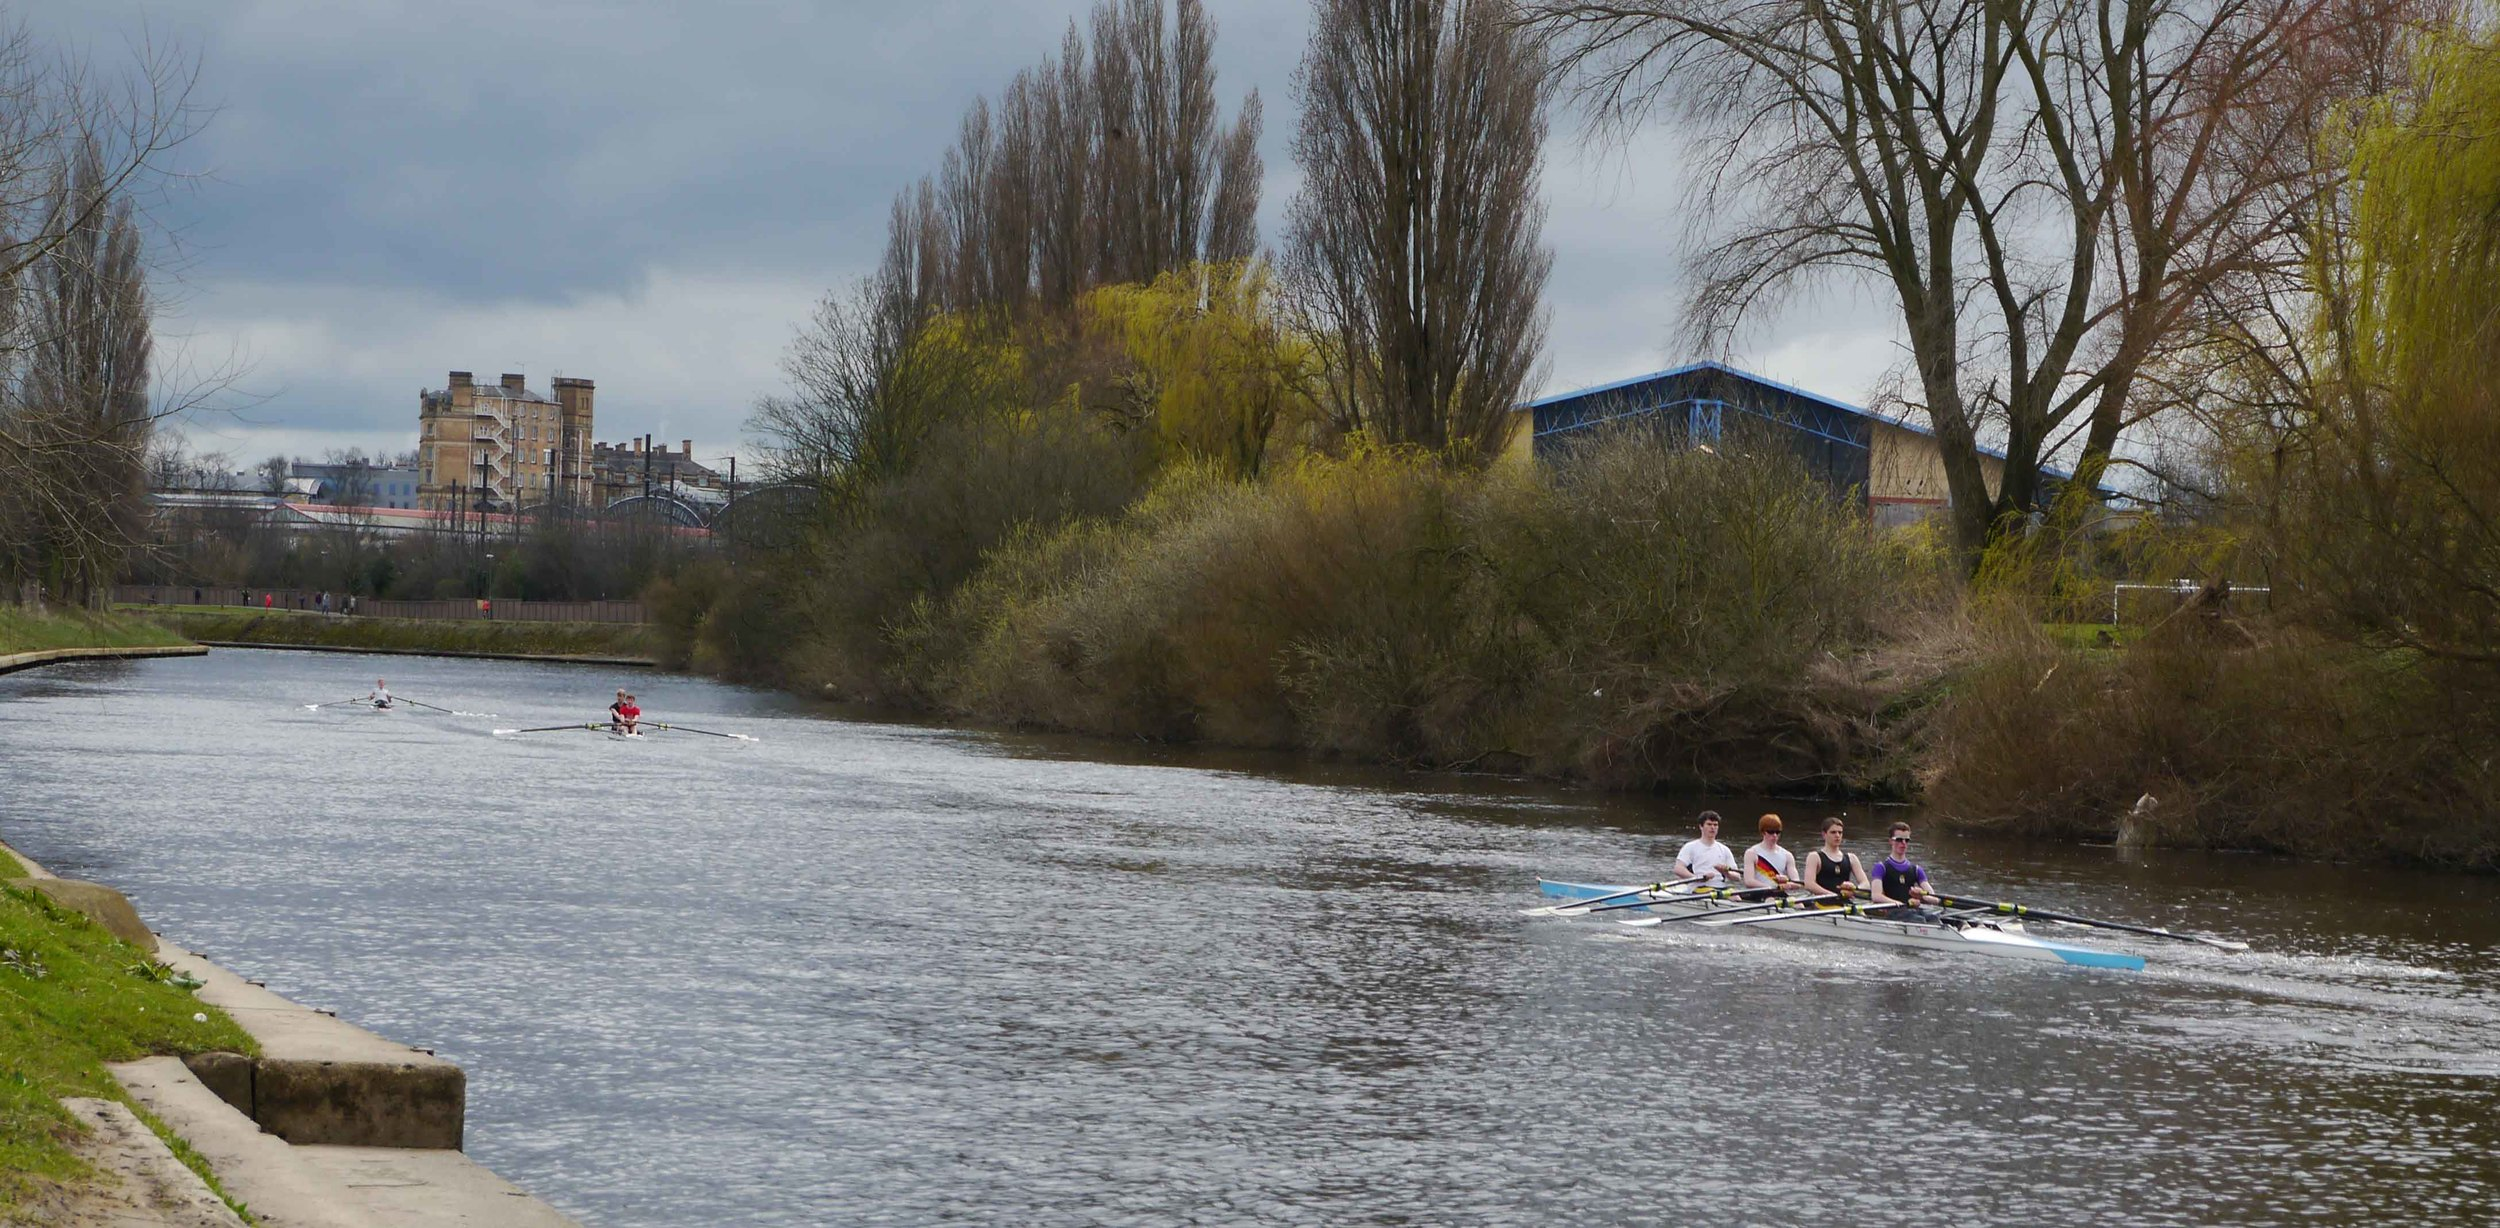 Rowers on the river Ouse in York.jpg